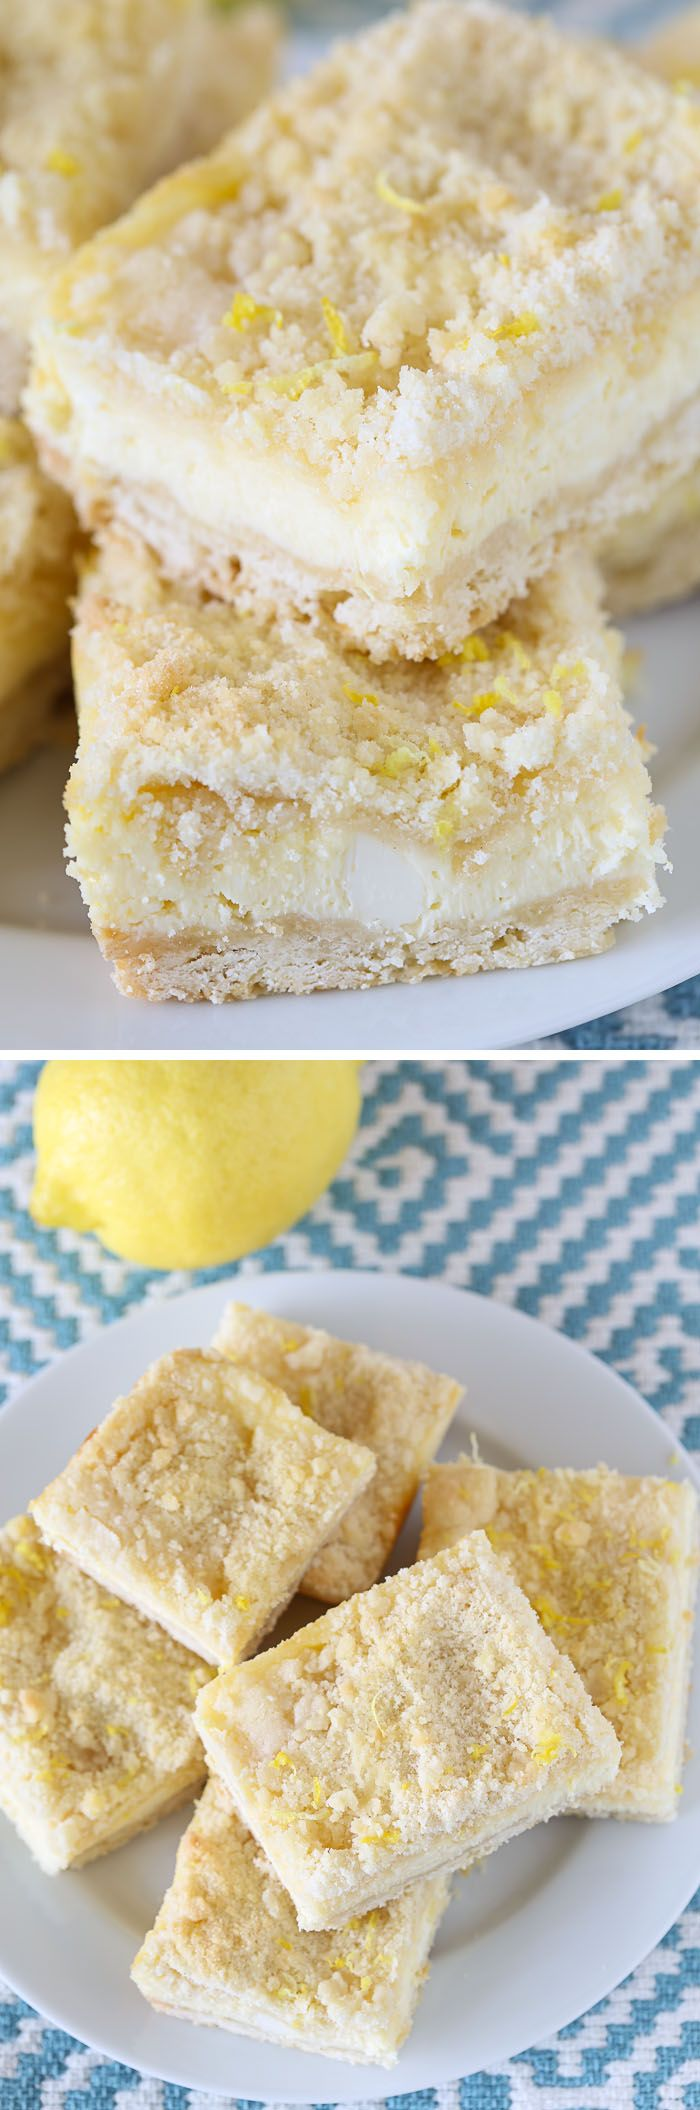 Lemon Shortbread Crumble Bars: The ULTIMATE Lemon Lover's Dessert! These bars are the perfect balance of buttery, sweet, tangy, creamy, crunchy, and EASY. You HAVE to make them! Sponsored by and made with Plugra Butter!